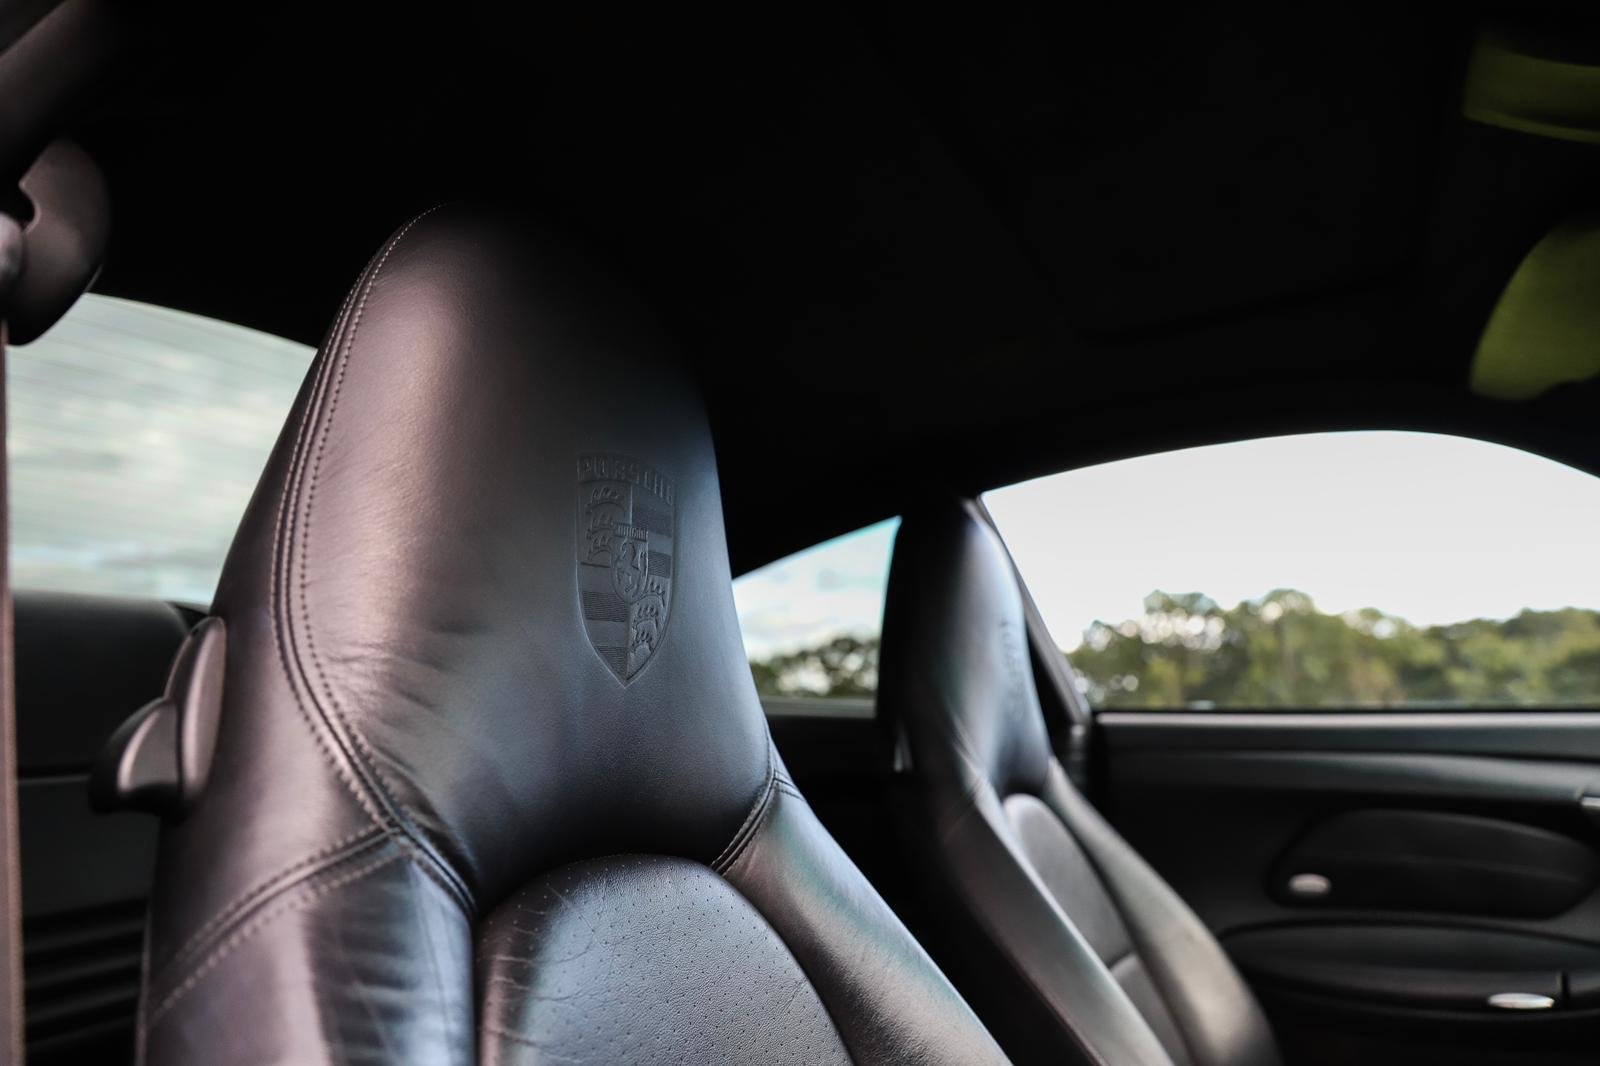 2000 PORSCHE 996 TURBO - MANUAL COUPE - 20 SERVICE STAMPS For Sale (picture 6 of 6)